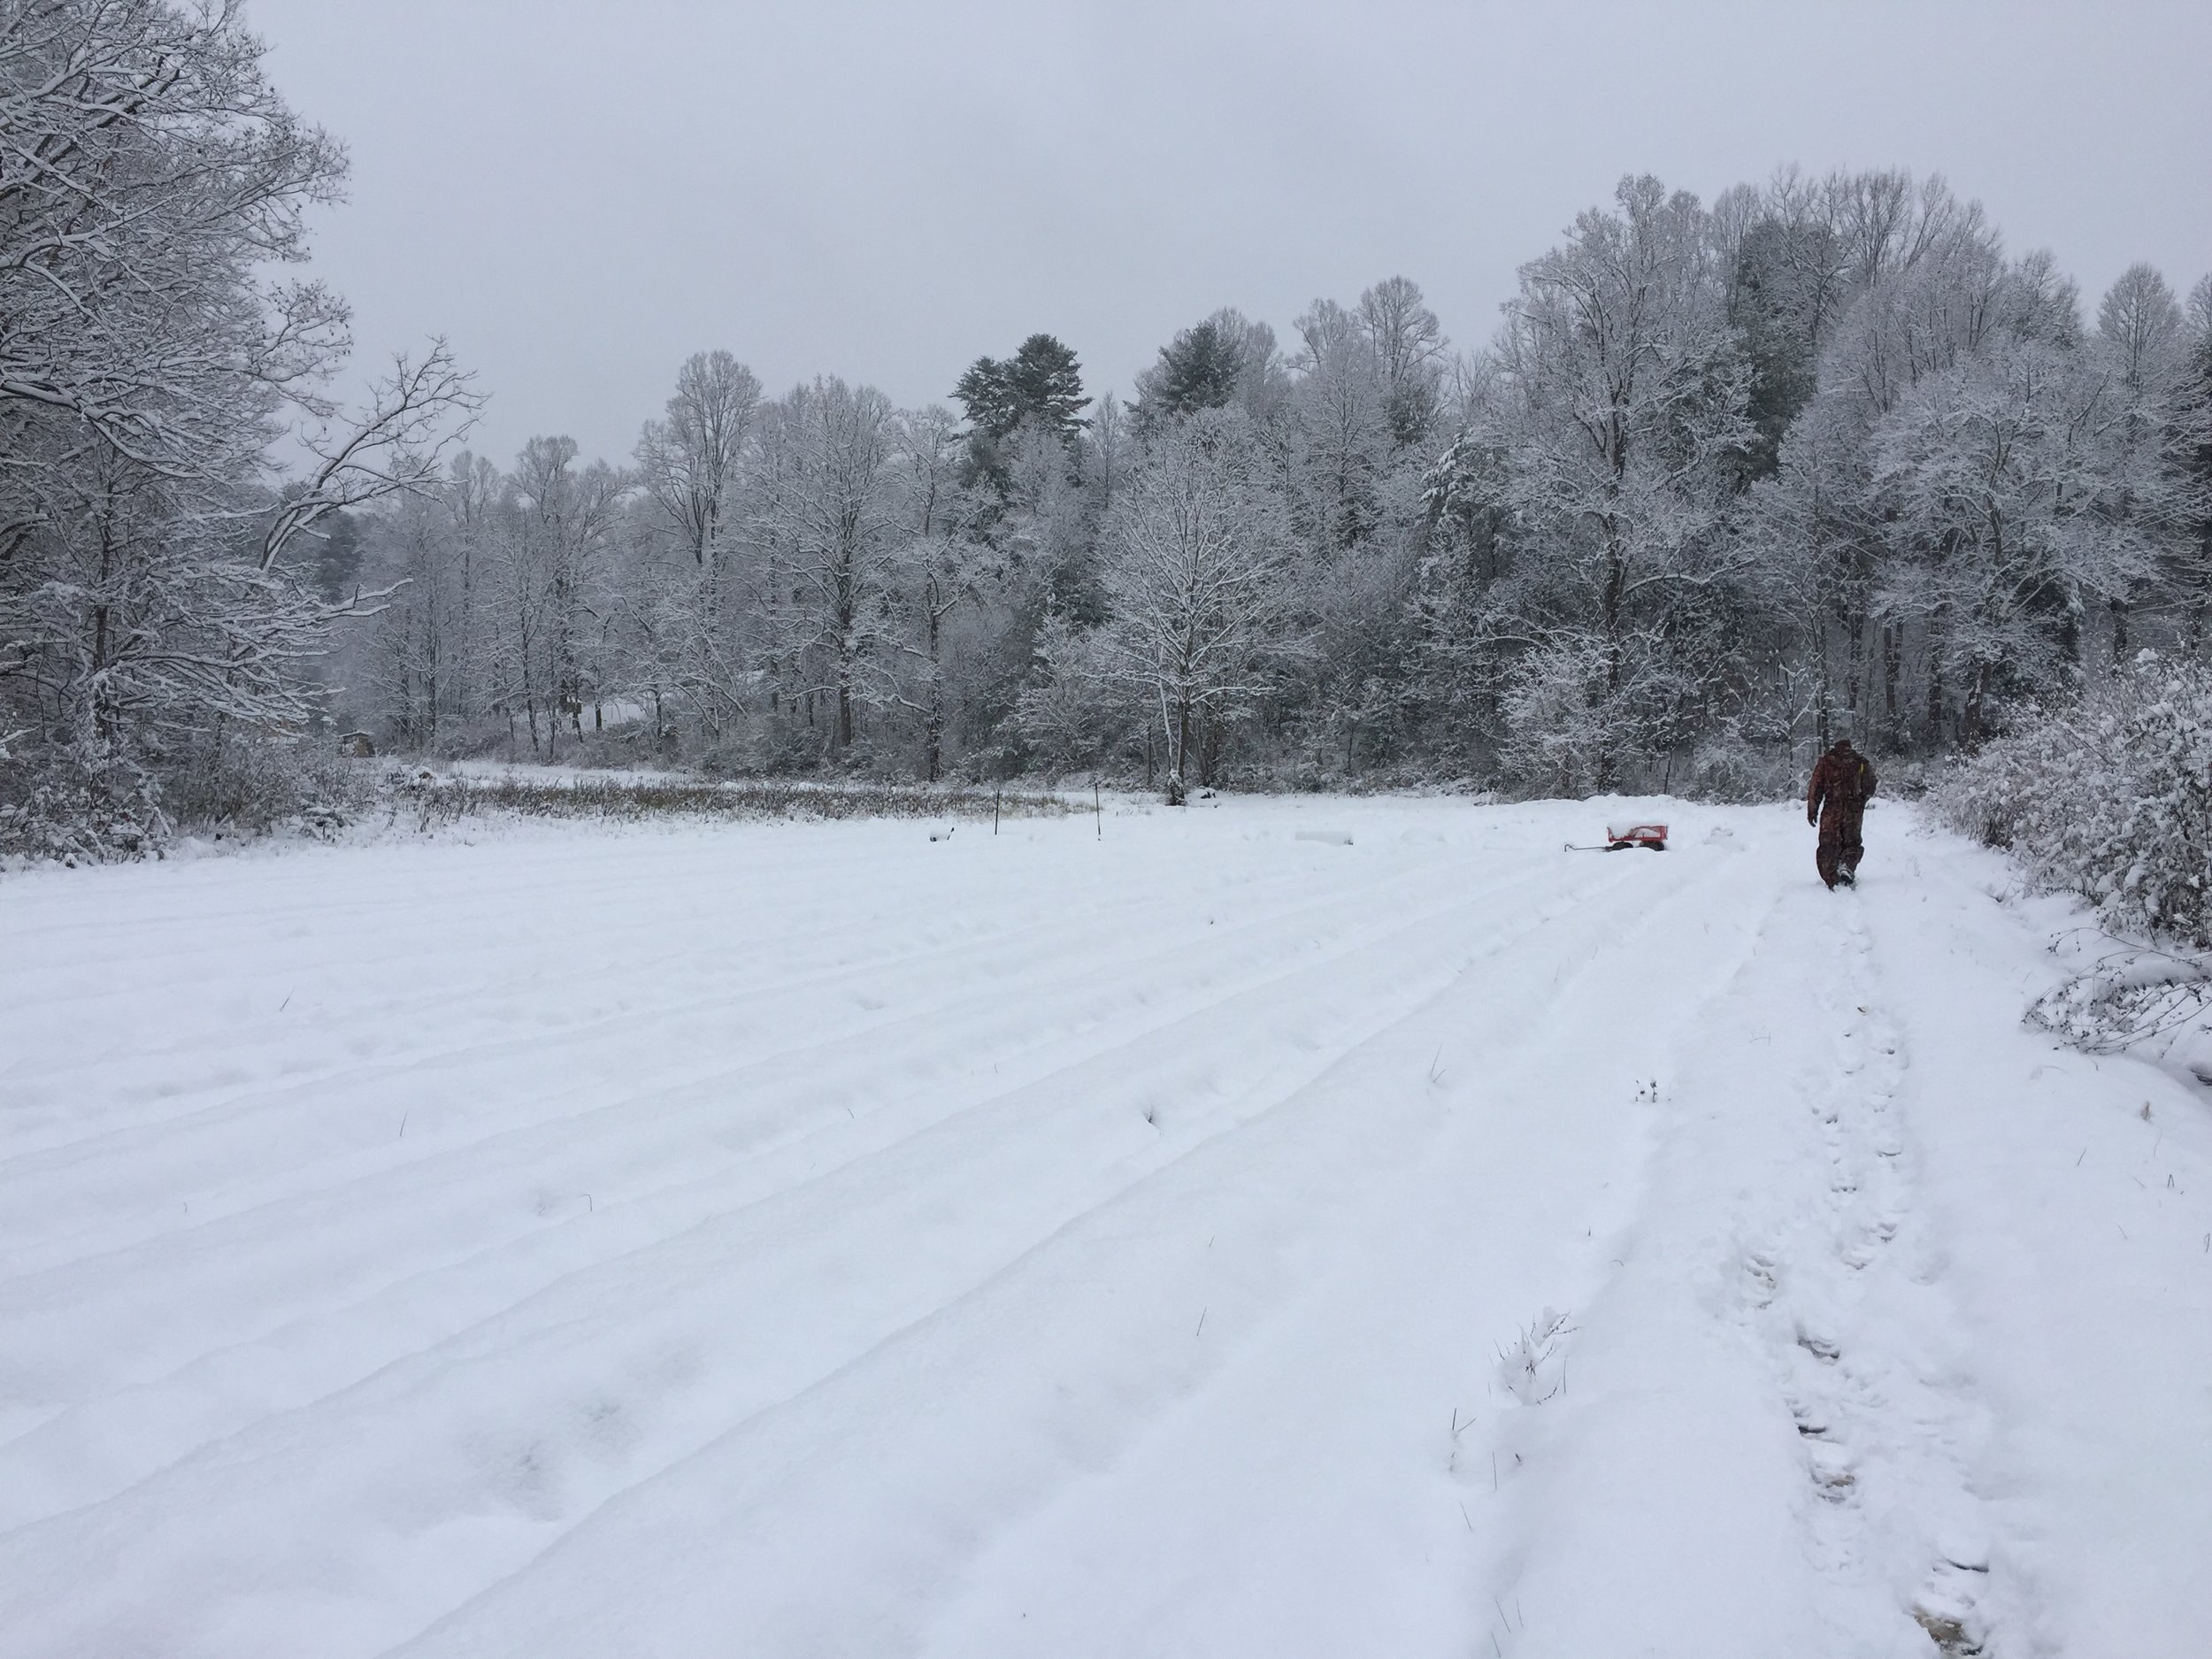 This picture is of fields of flowers. Covered in snow.